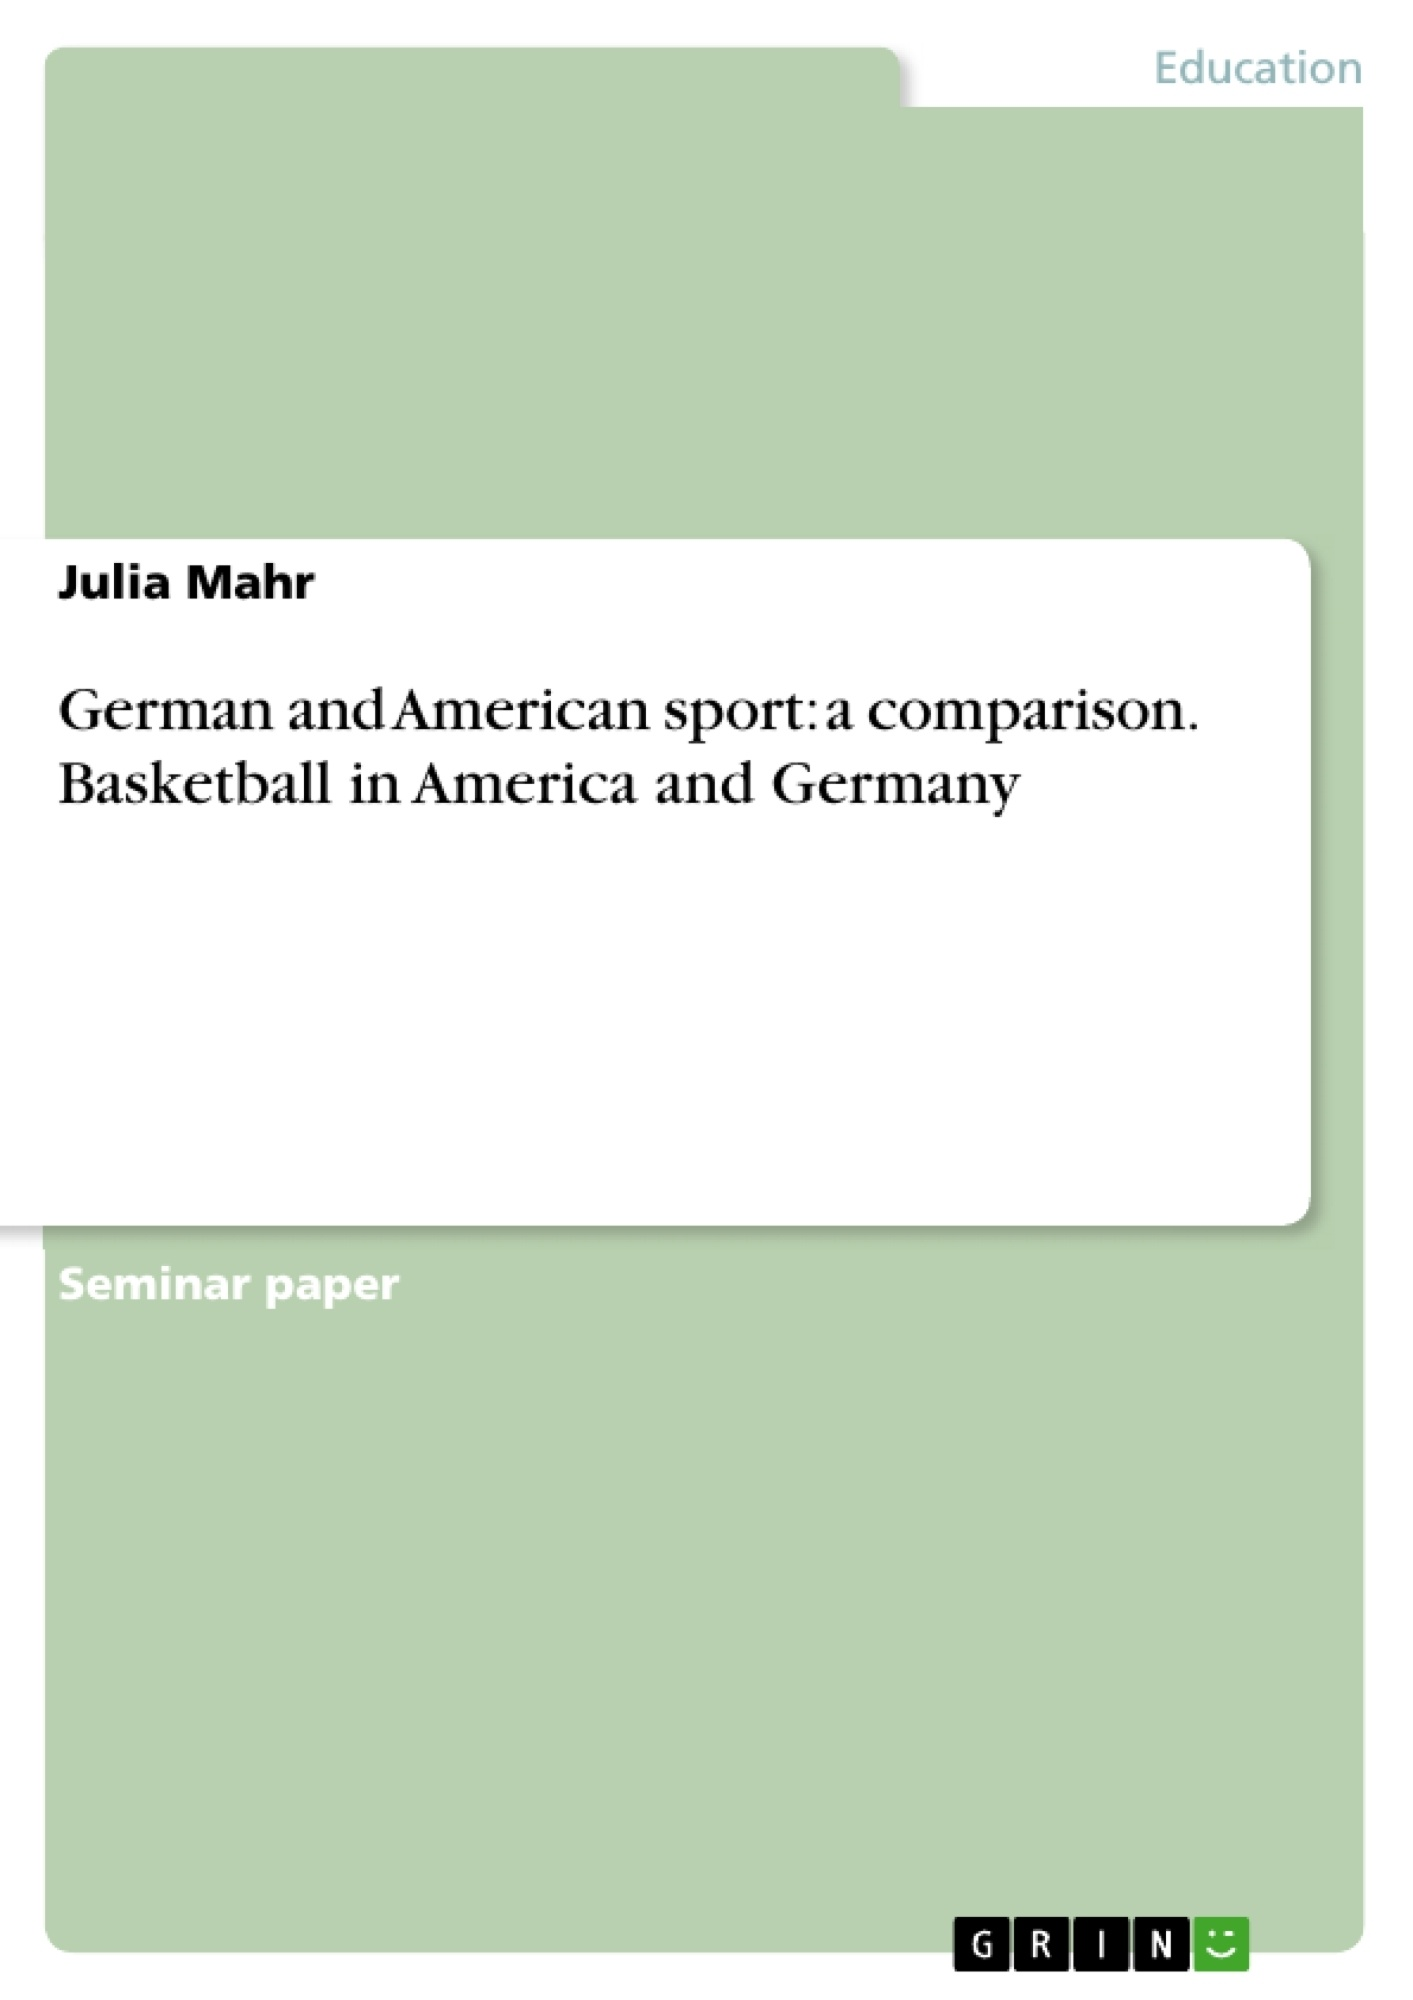 essay basketball essay soccer pay to write cheap cover letter  german and american sport a comparison basketball in america and german and american sport a comparison essay on basketball